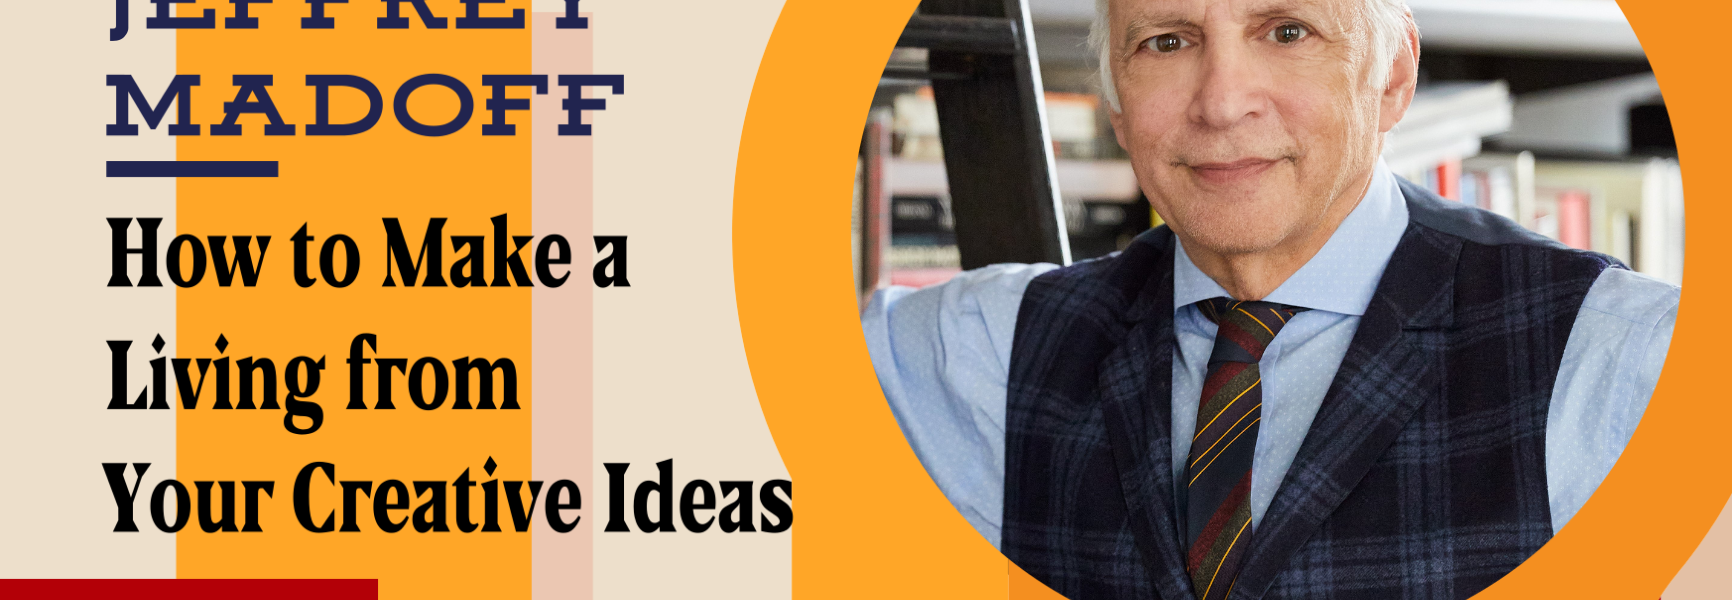 How to Make a Living from Your Creative Ideas with Jeffrey Madoff